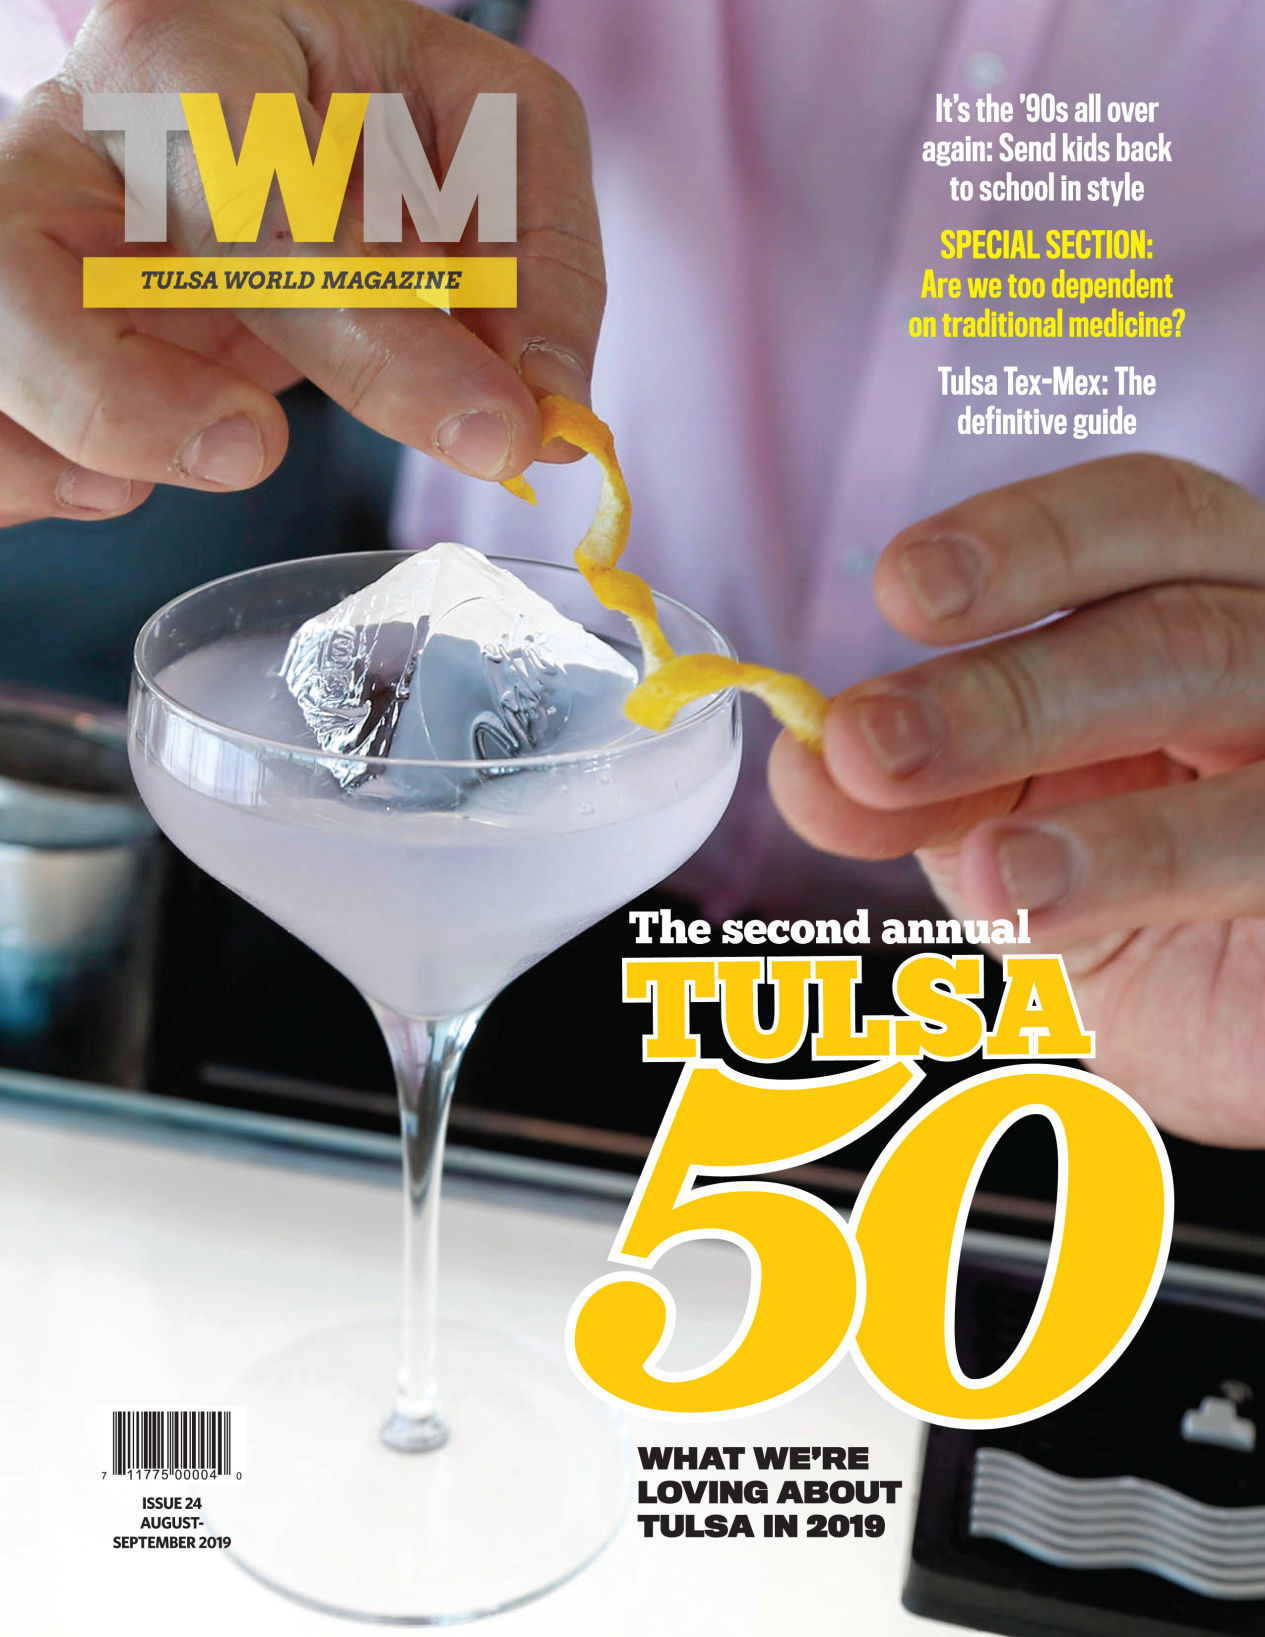 Buy the current Tulsa World Magazine: The Tulsa 50